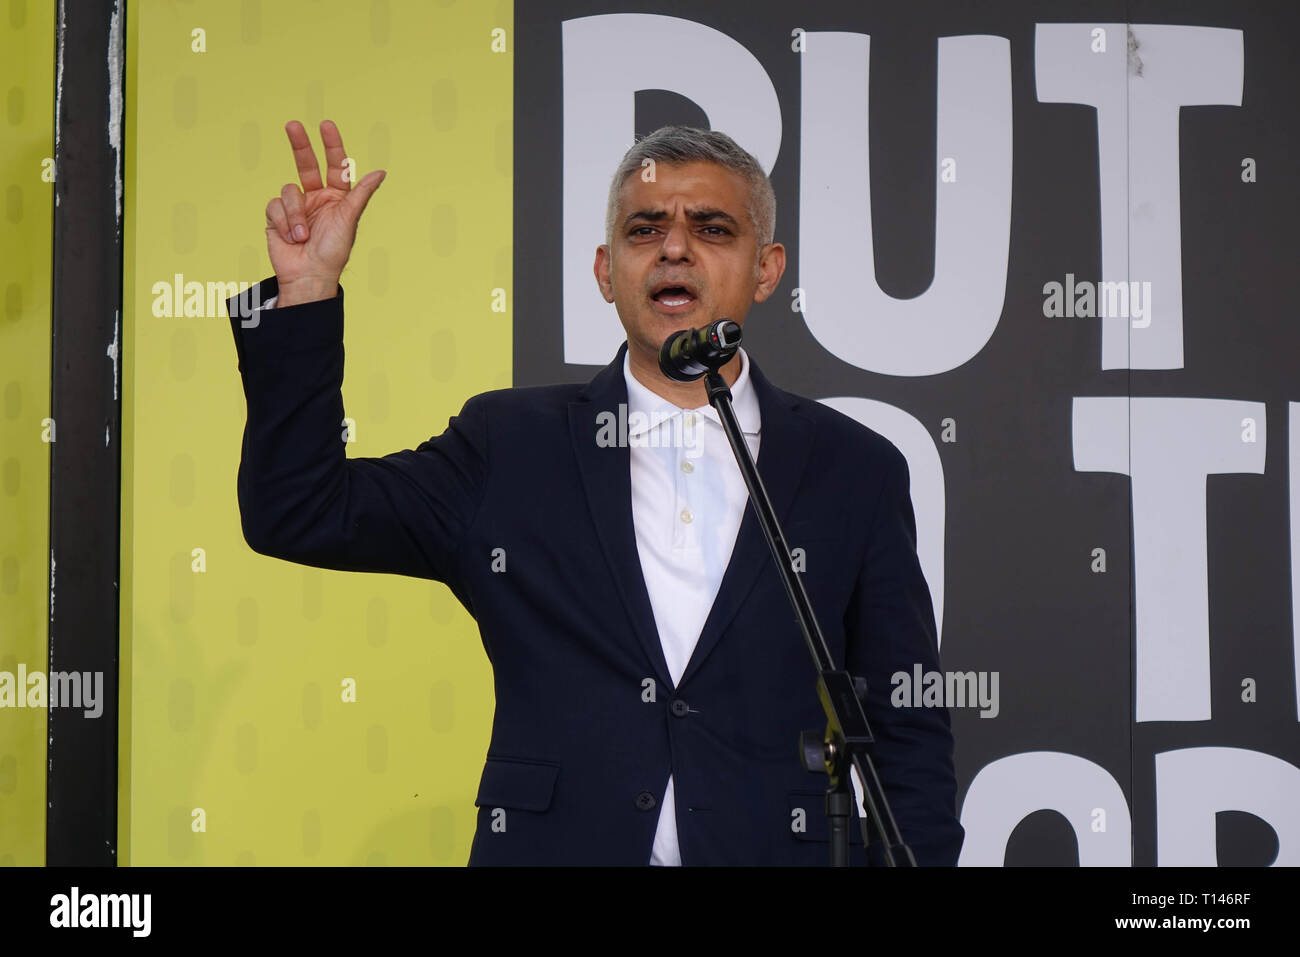 London, UK. 23rd March, 2019. London Mayor Sadiq Khan speaks on 'People's Vote' March in Parliament Square, London, 23rd Of March, 2019. Credit: Thomas Krych/Alamy Live News - Stock Image